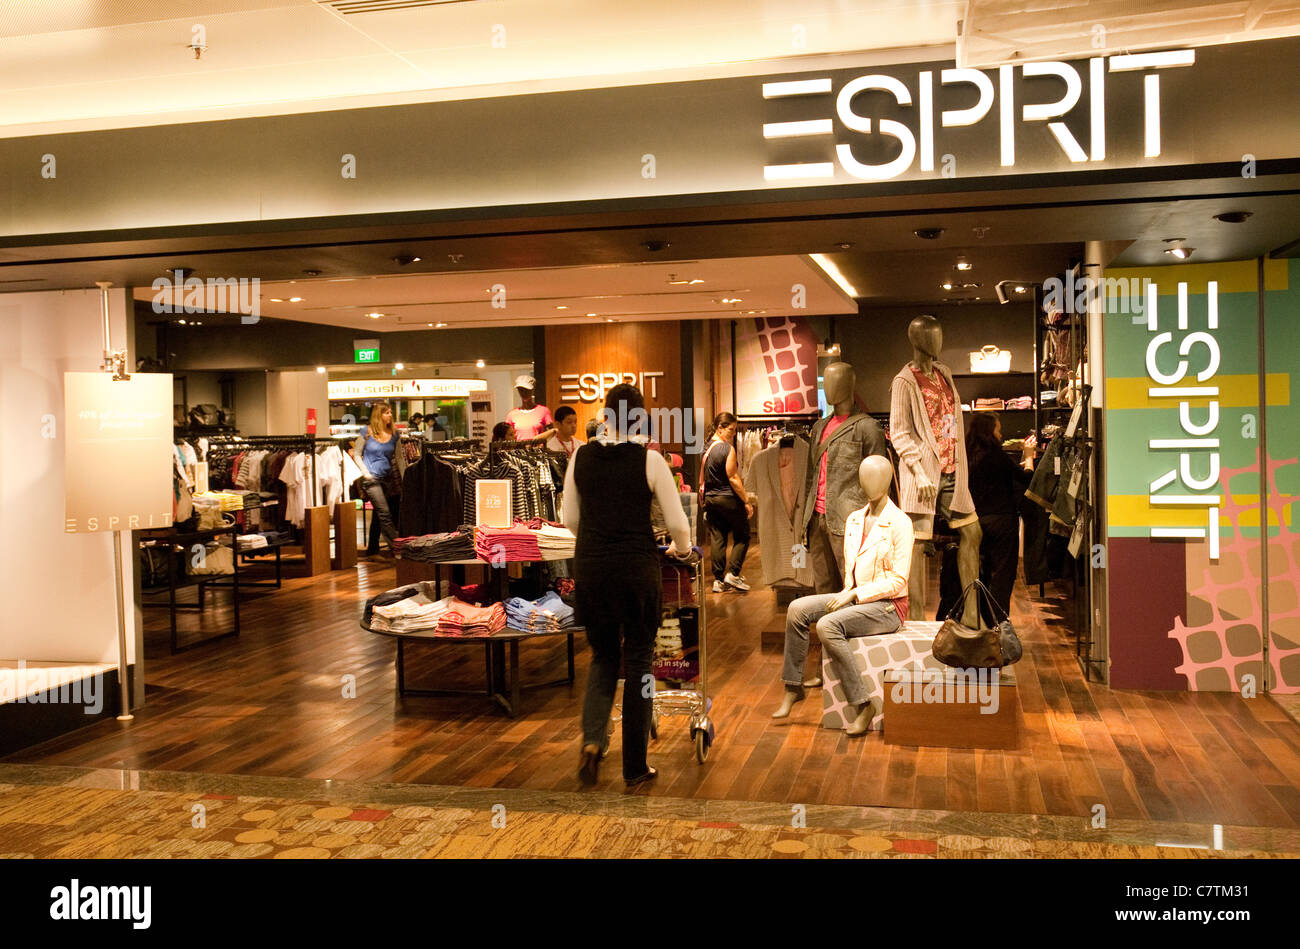 Esprit Shop People Shopping At The Esprit Fashion Store Changi Airport